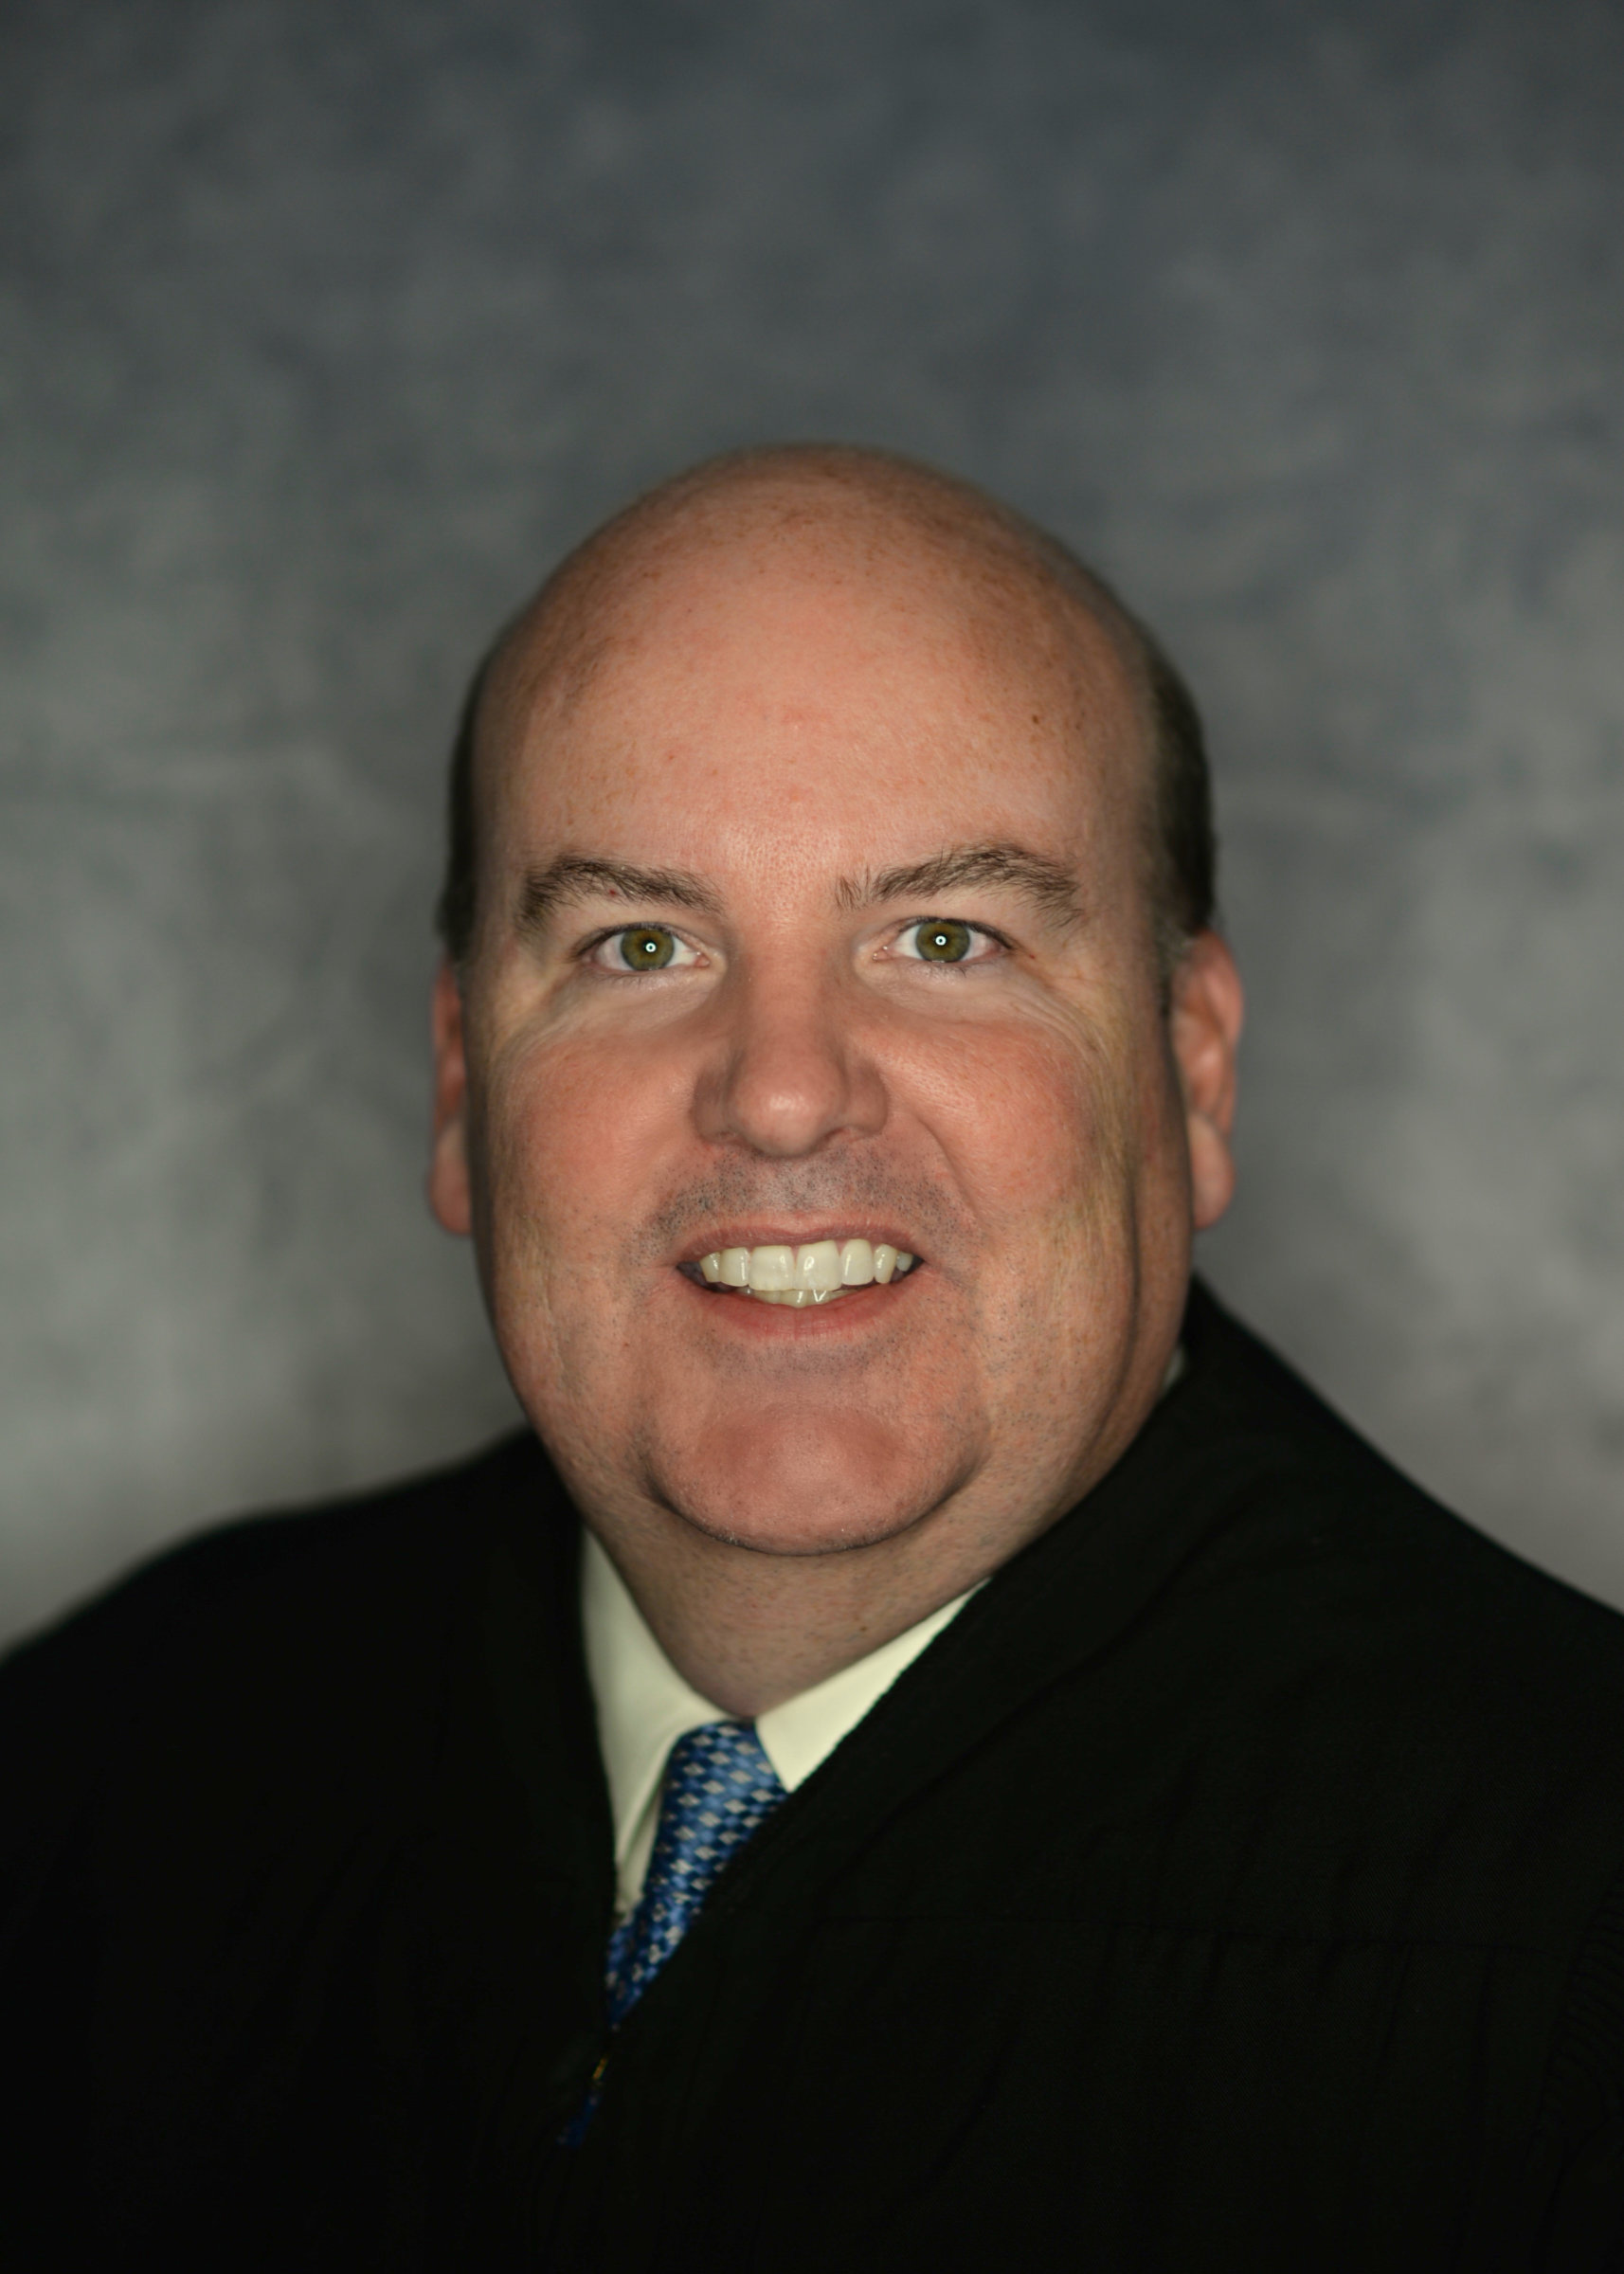 Judge Kredier